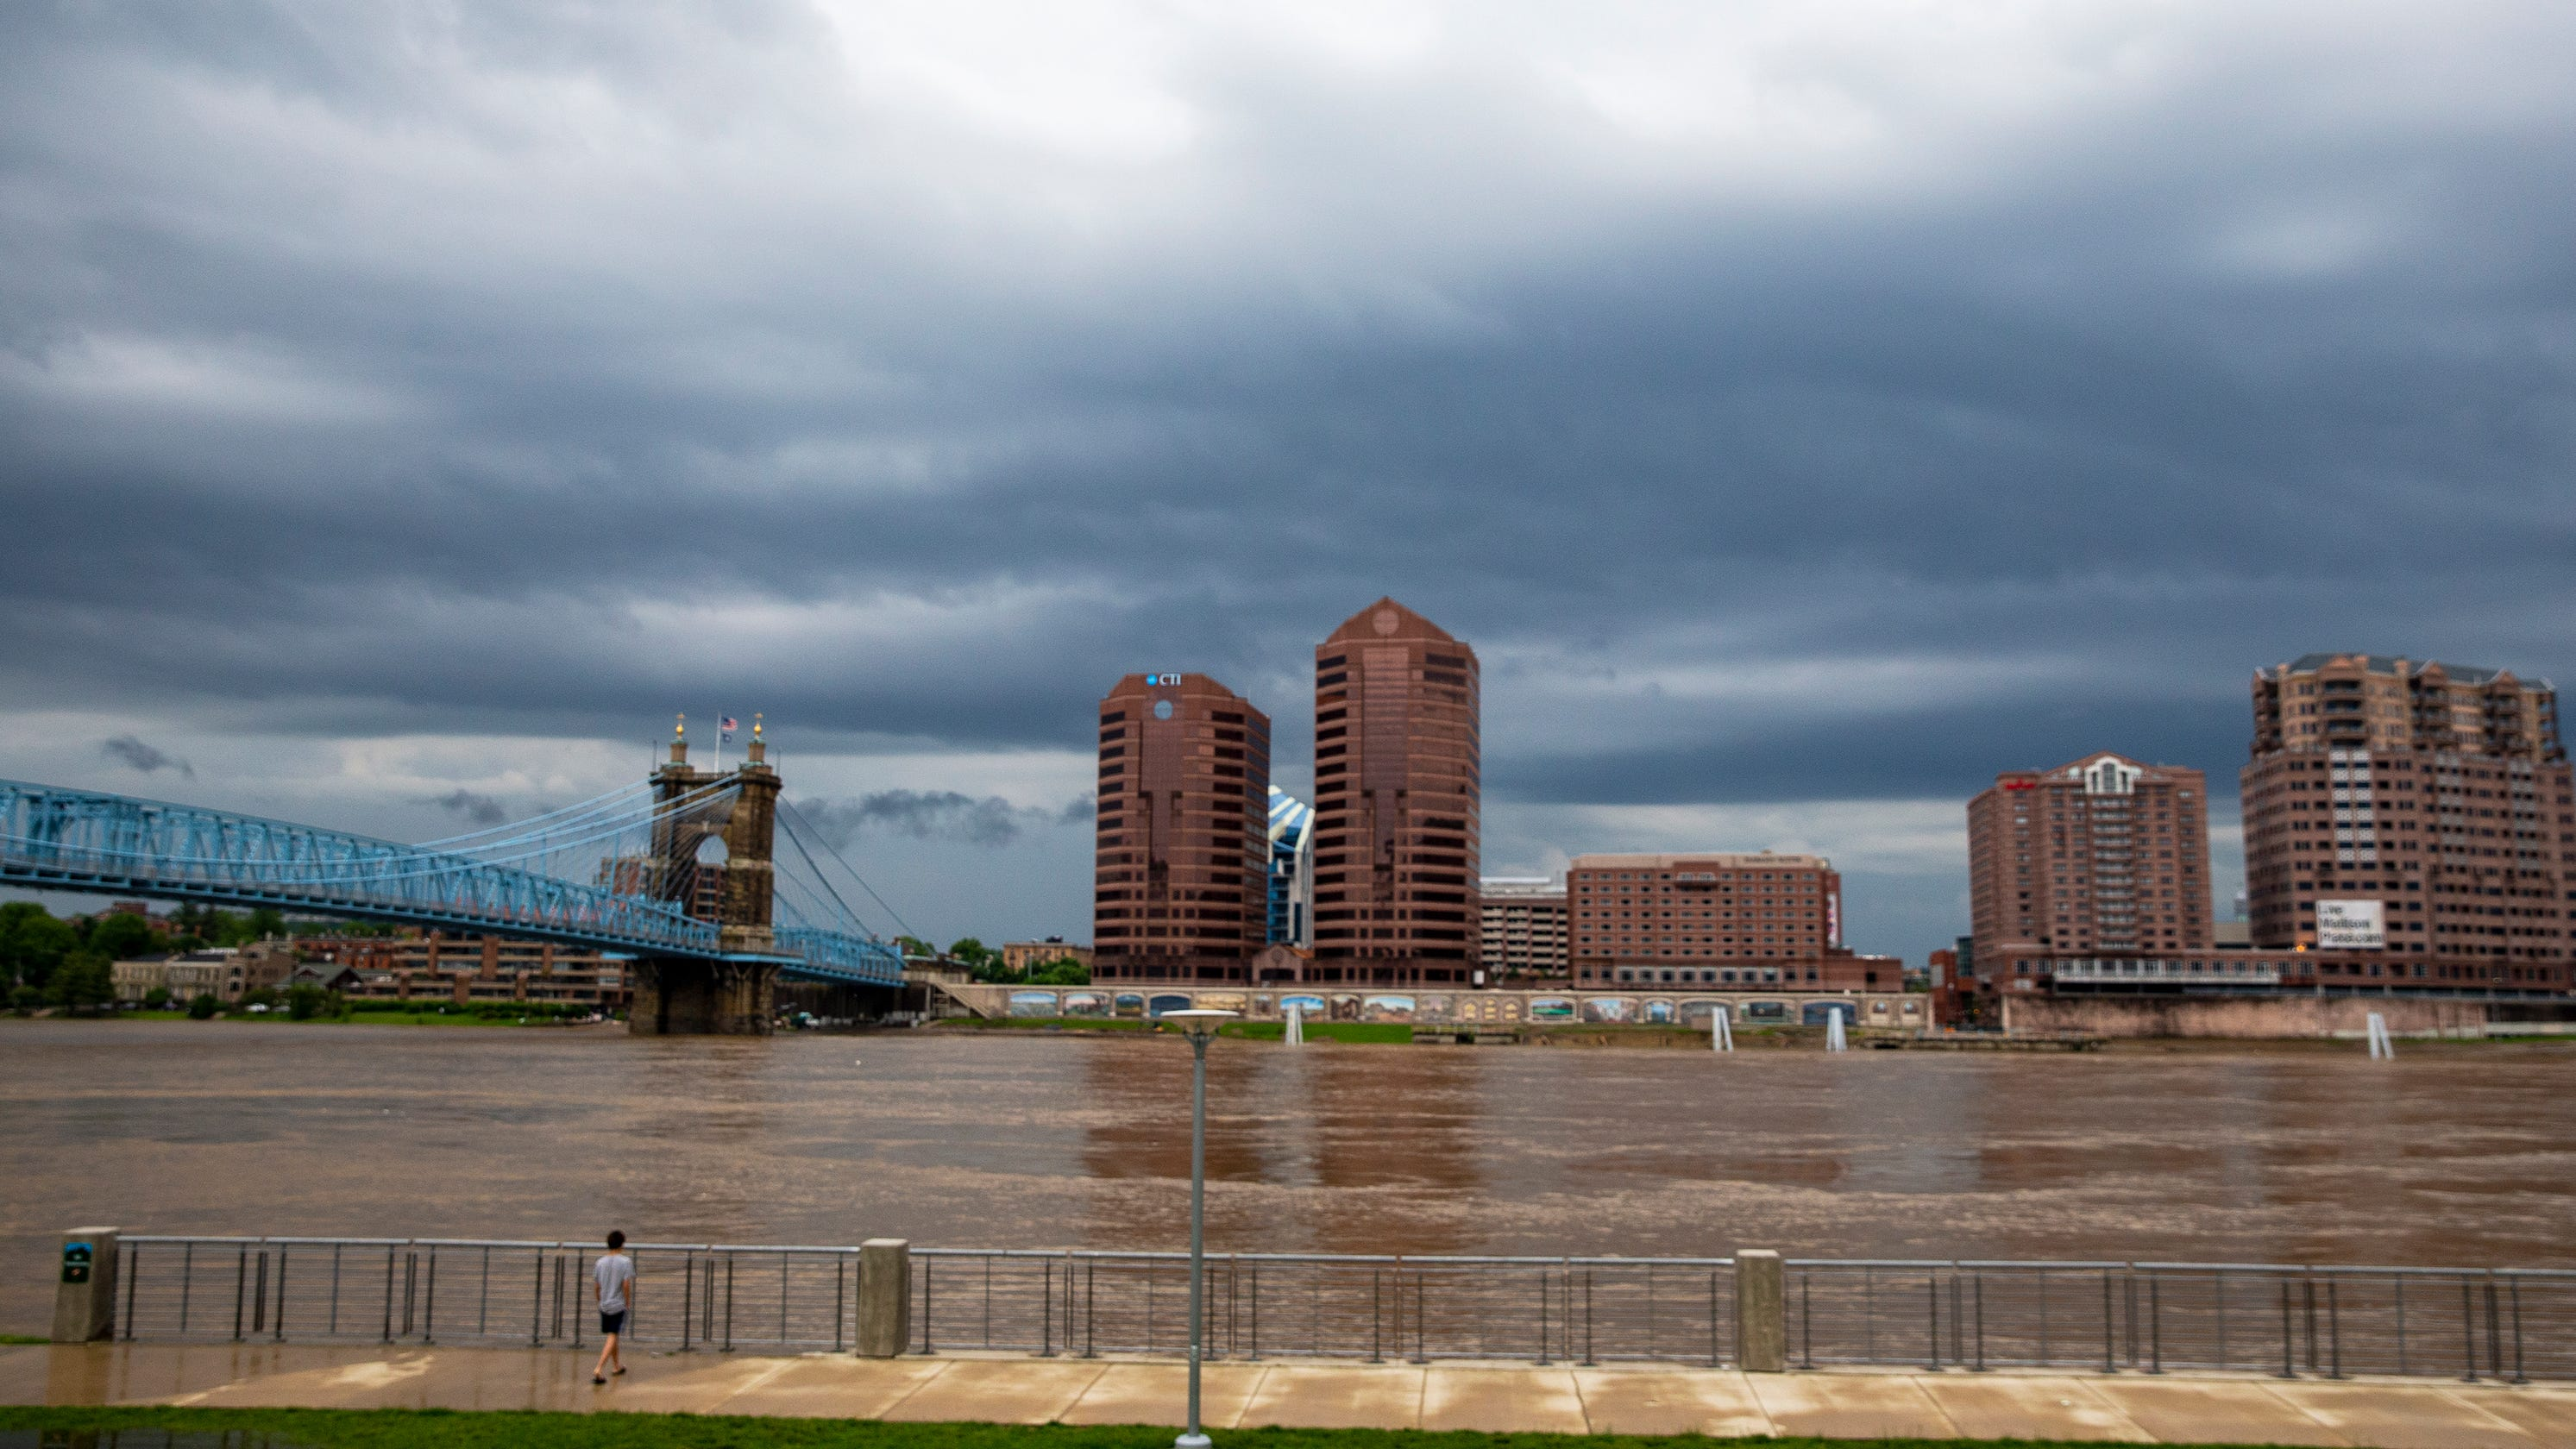 Weather: Severe weather threat passes through area, thunderstorms possible Thursday afternoon